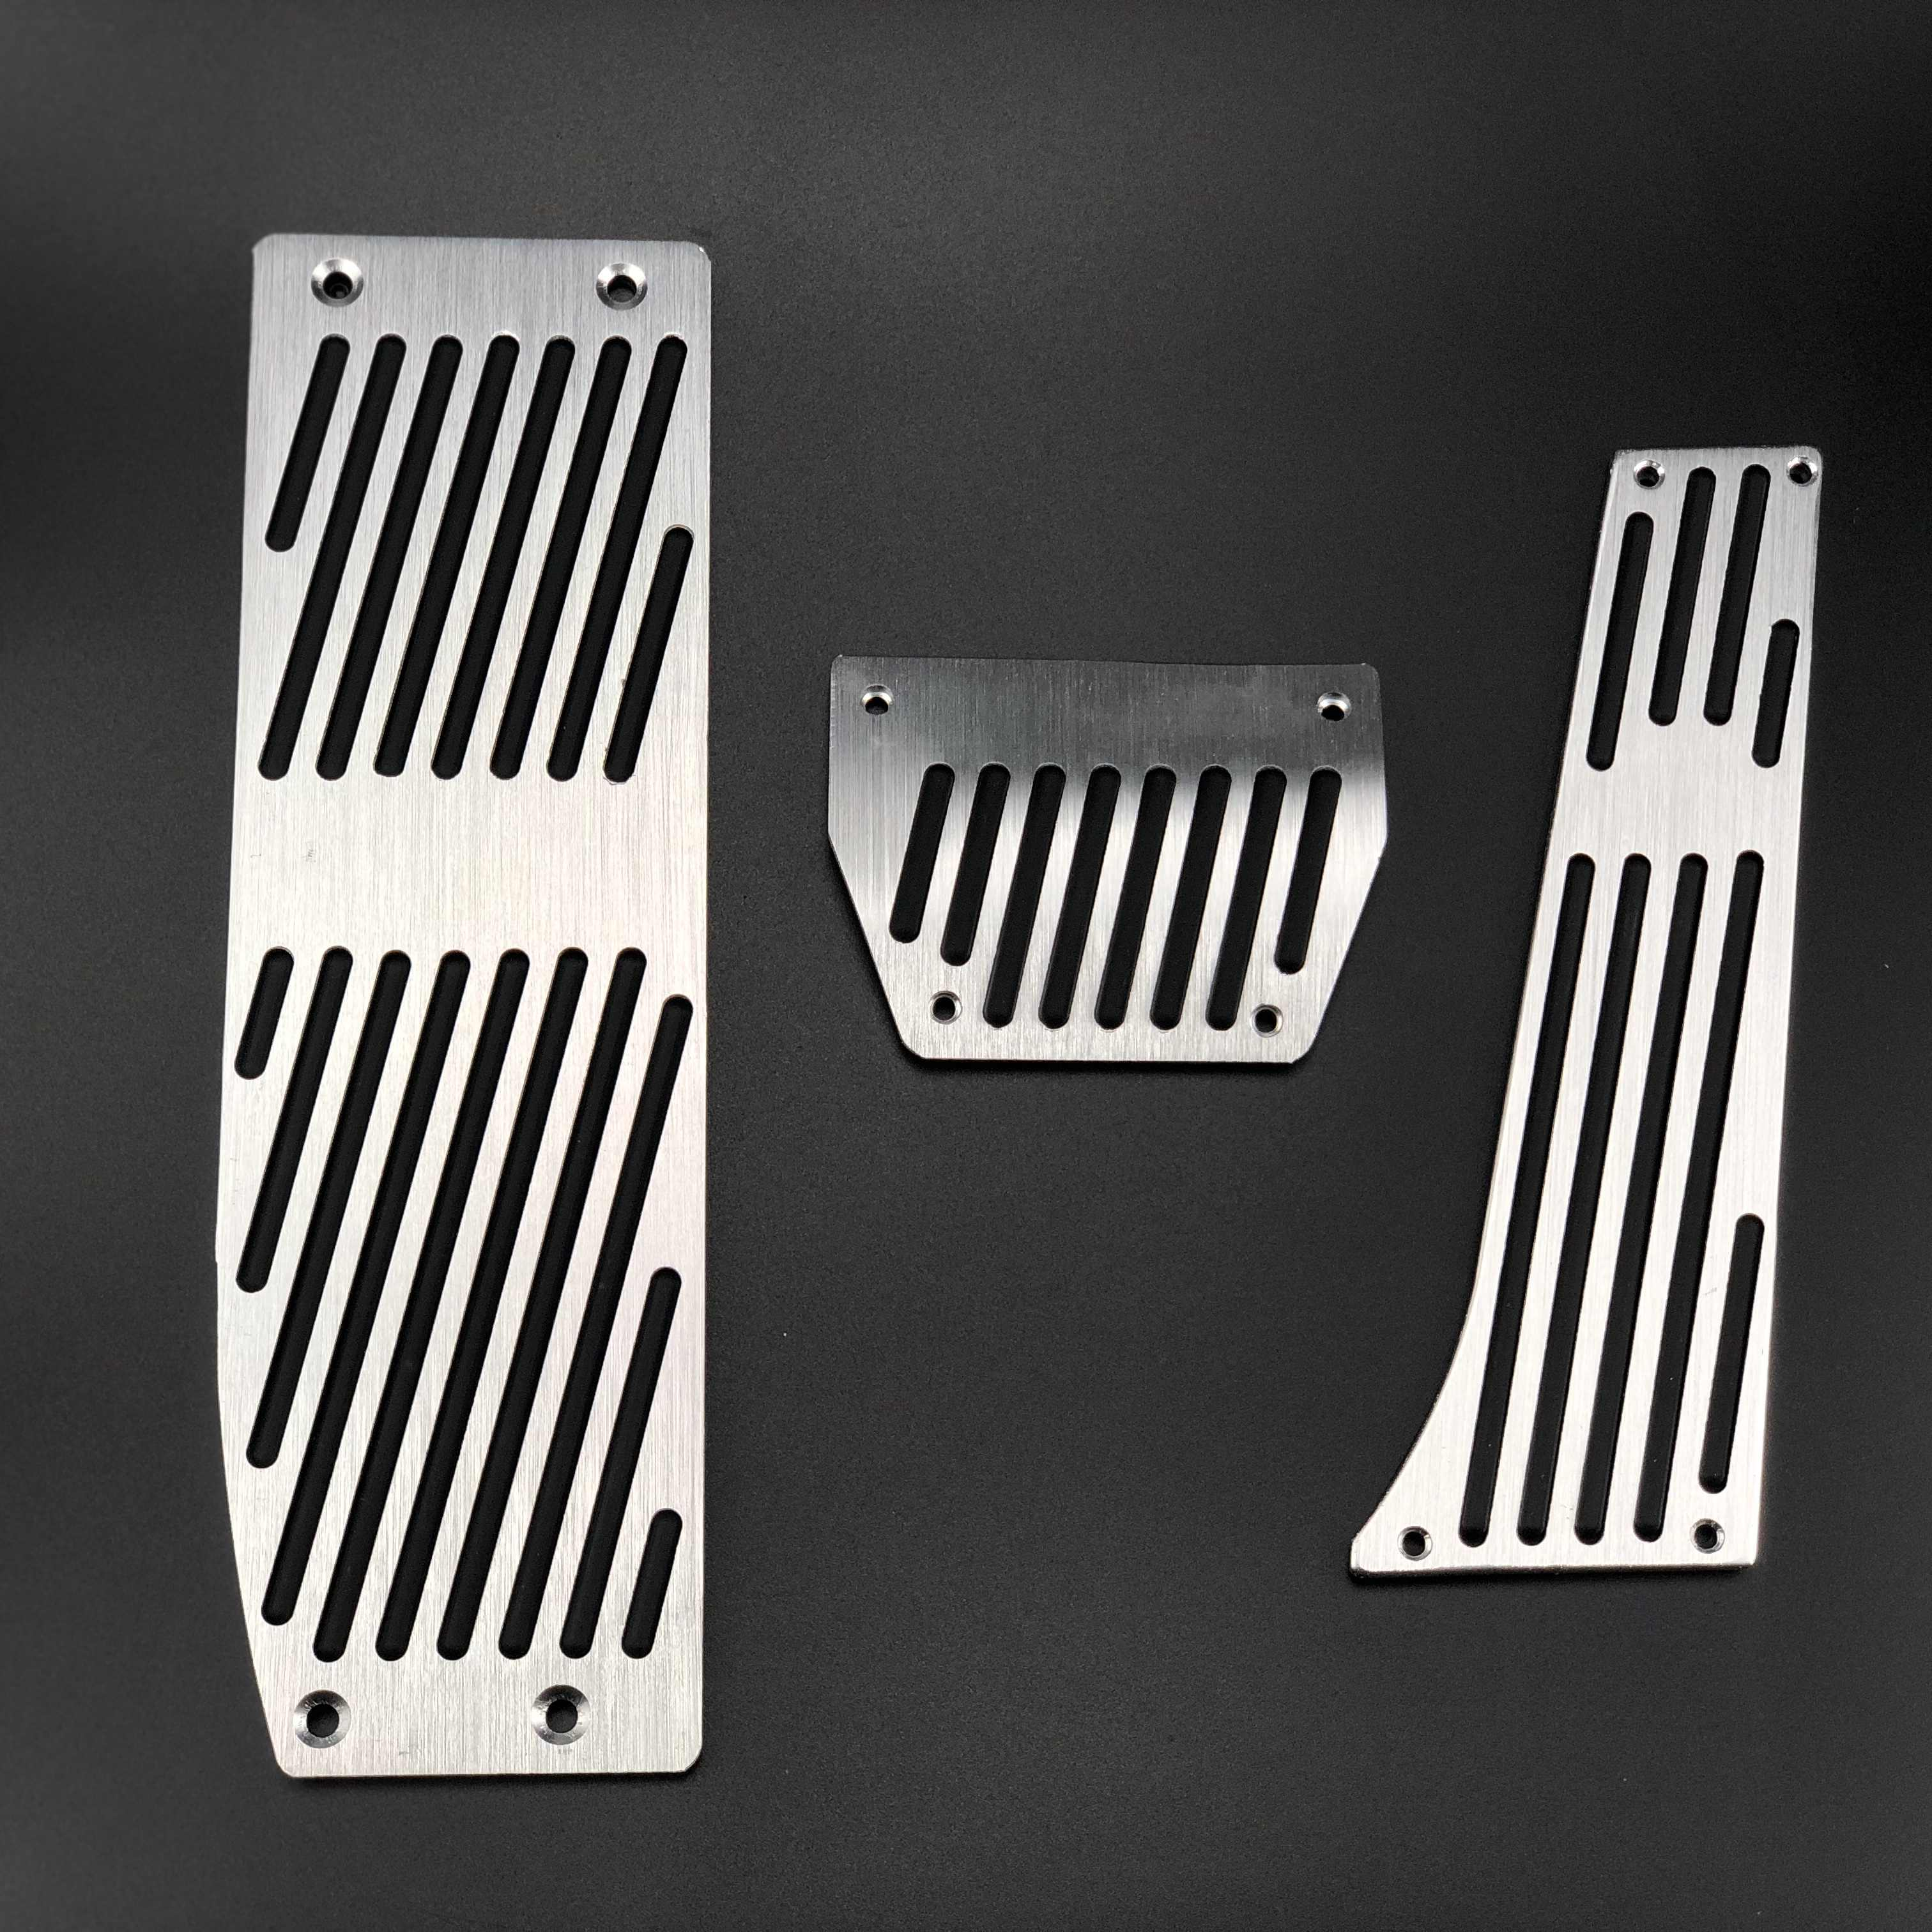 Monland Car Styling Accessories Case Footrest Pedal,for 3 5 Series E30 E32 E34 E36 E38 E39 E46 E87 E90 E91 x5 x3 Z3